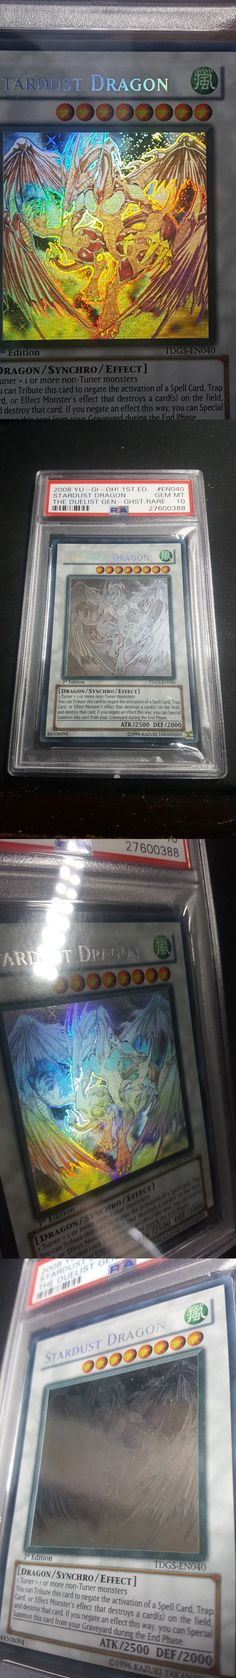 Yu-Gi-Oh Individual Cards 31395: ~Psa Gem Mint 10~ Stardust Dragon (Tdgs-En040) Ghost Rare 1St Edition Pop 6 -> BUY IT NOW ONLY: $1150 on eBay!